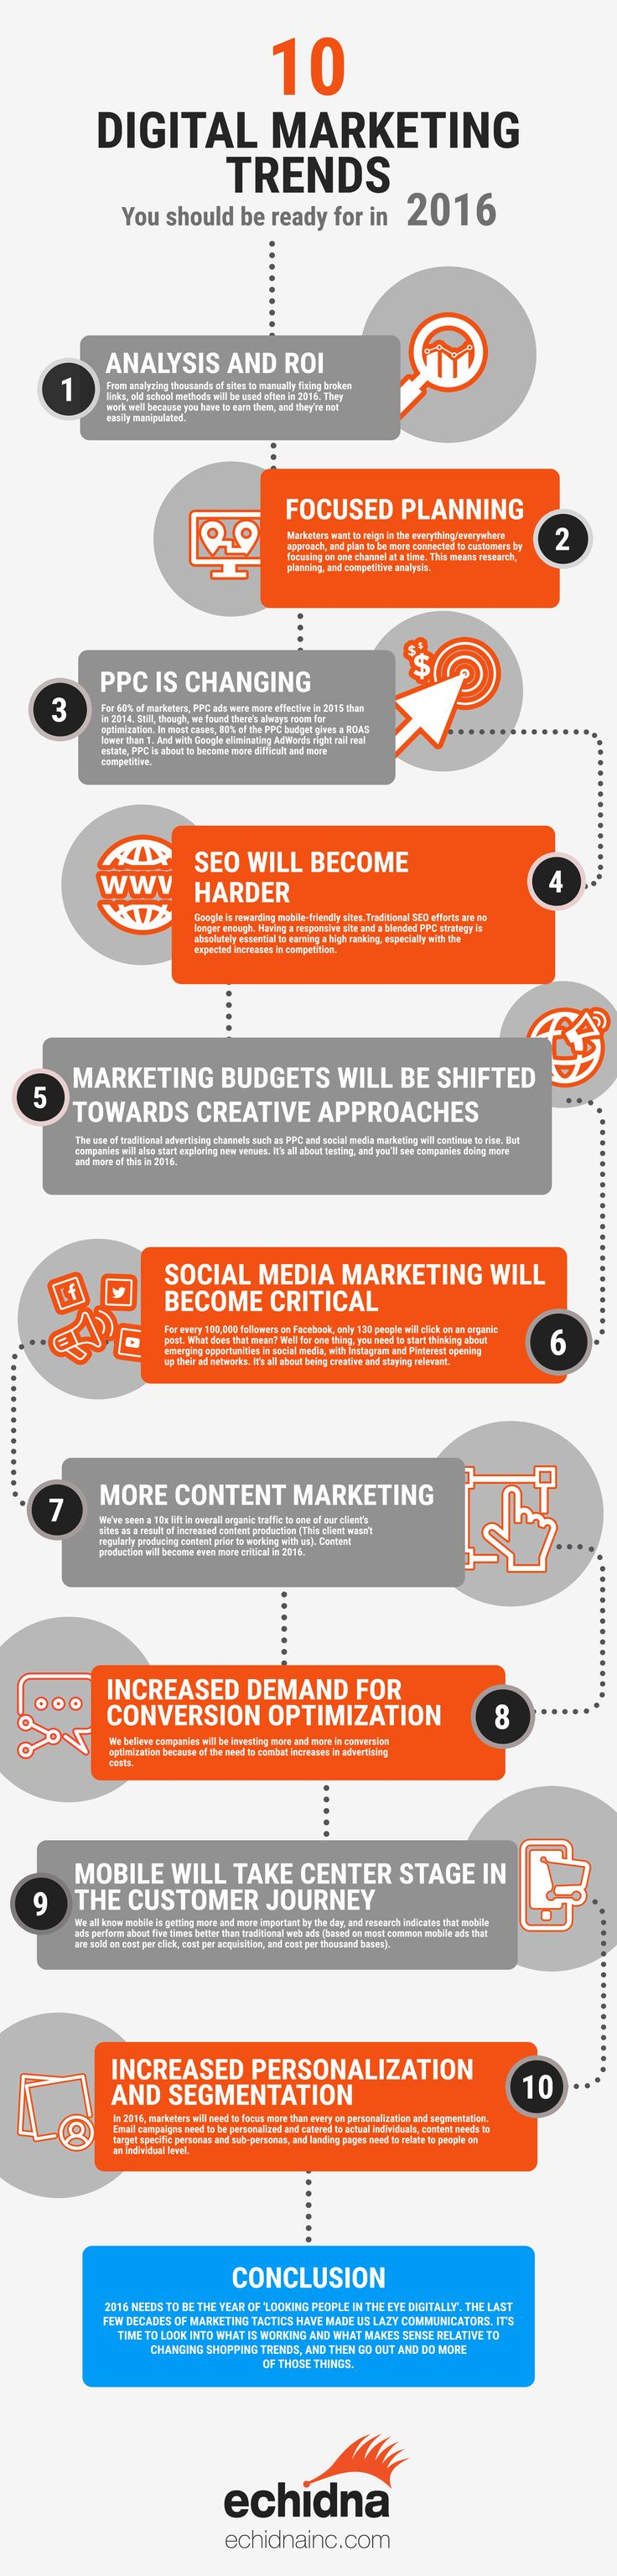 10 #DigitalMarketing trends to watch out for and pay attention to in 2016. #Marketing #InternetMarketing